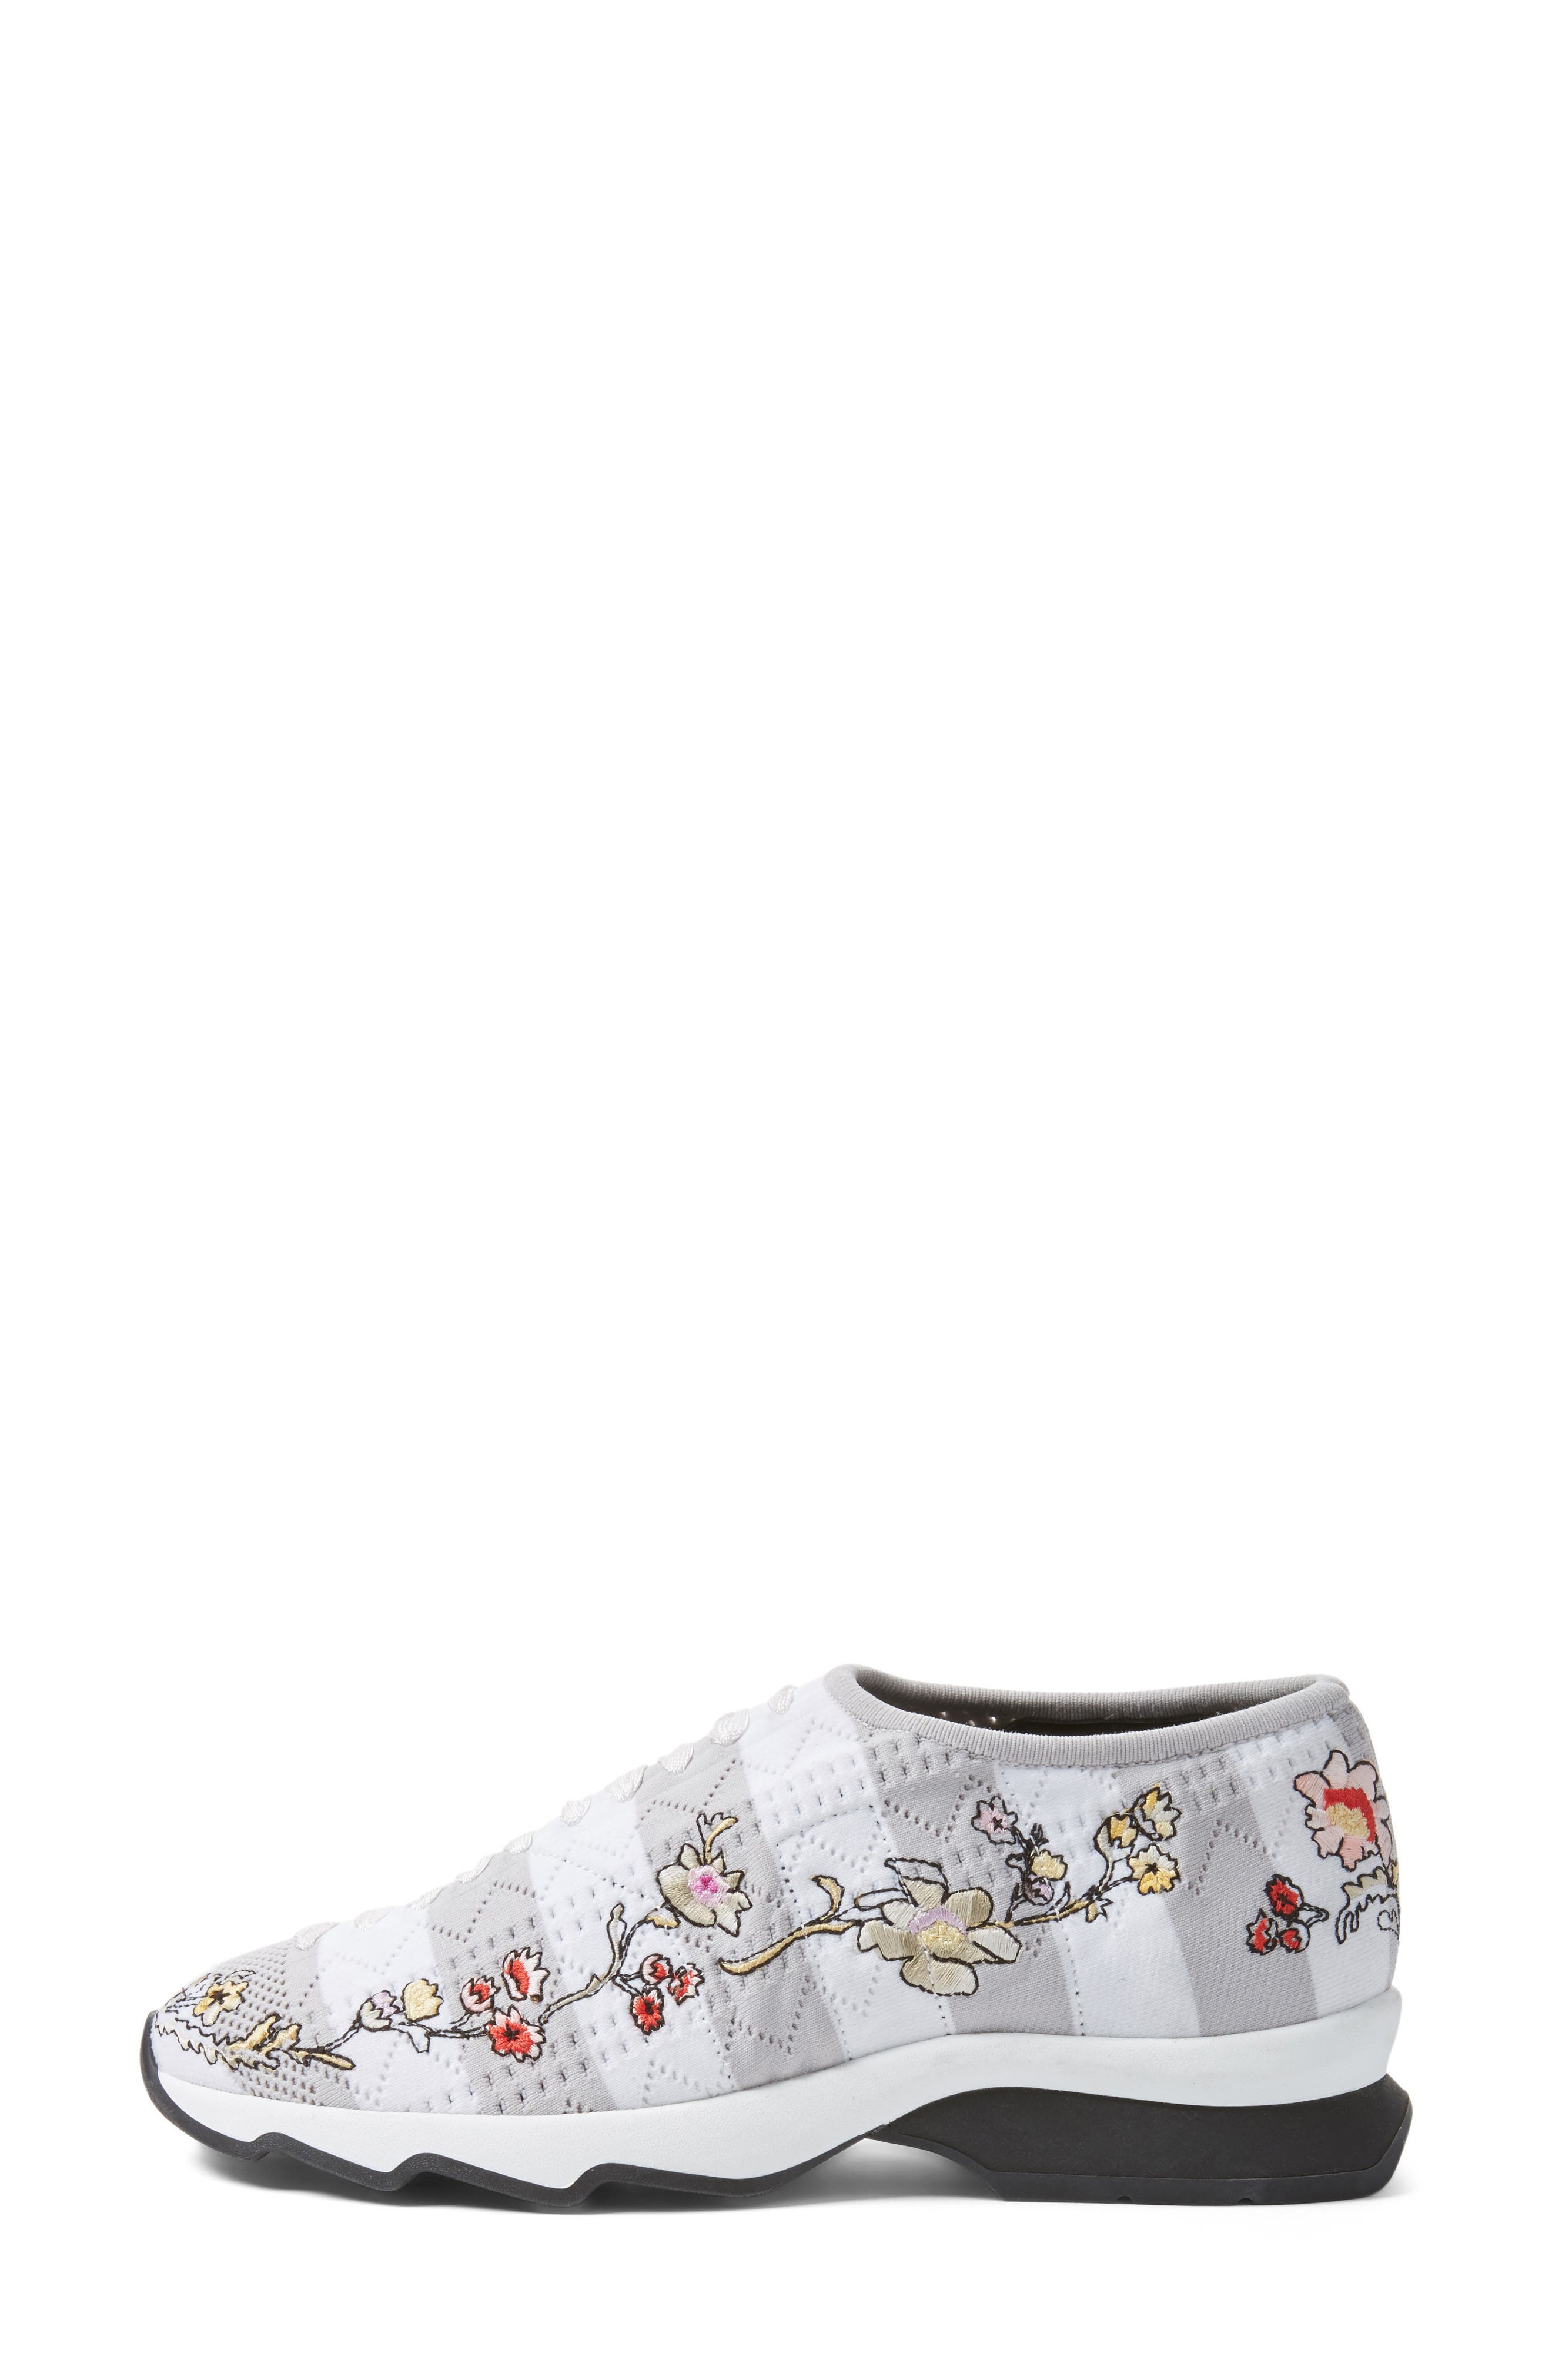 Alternate Image 3  - Fendi Marie Antoinette Sneaker (Women)